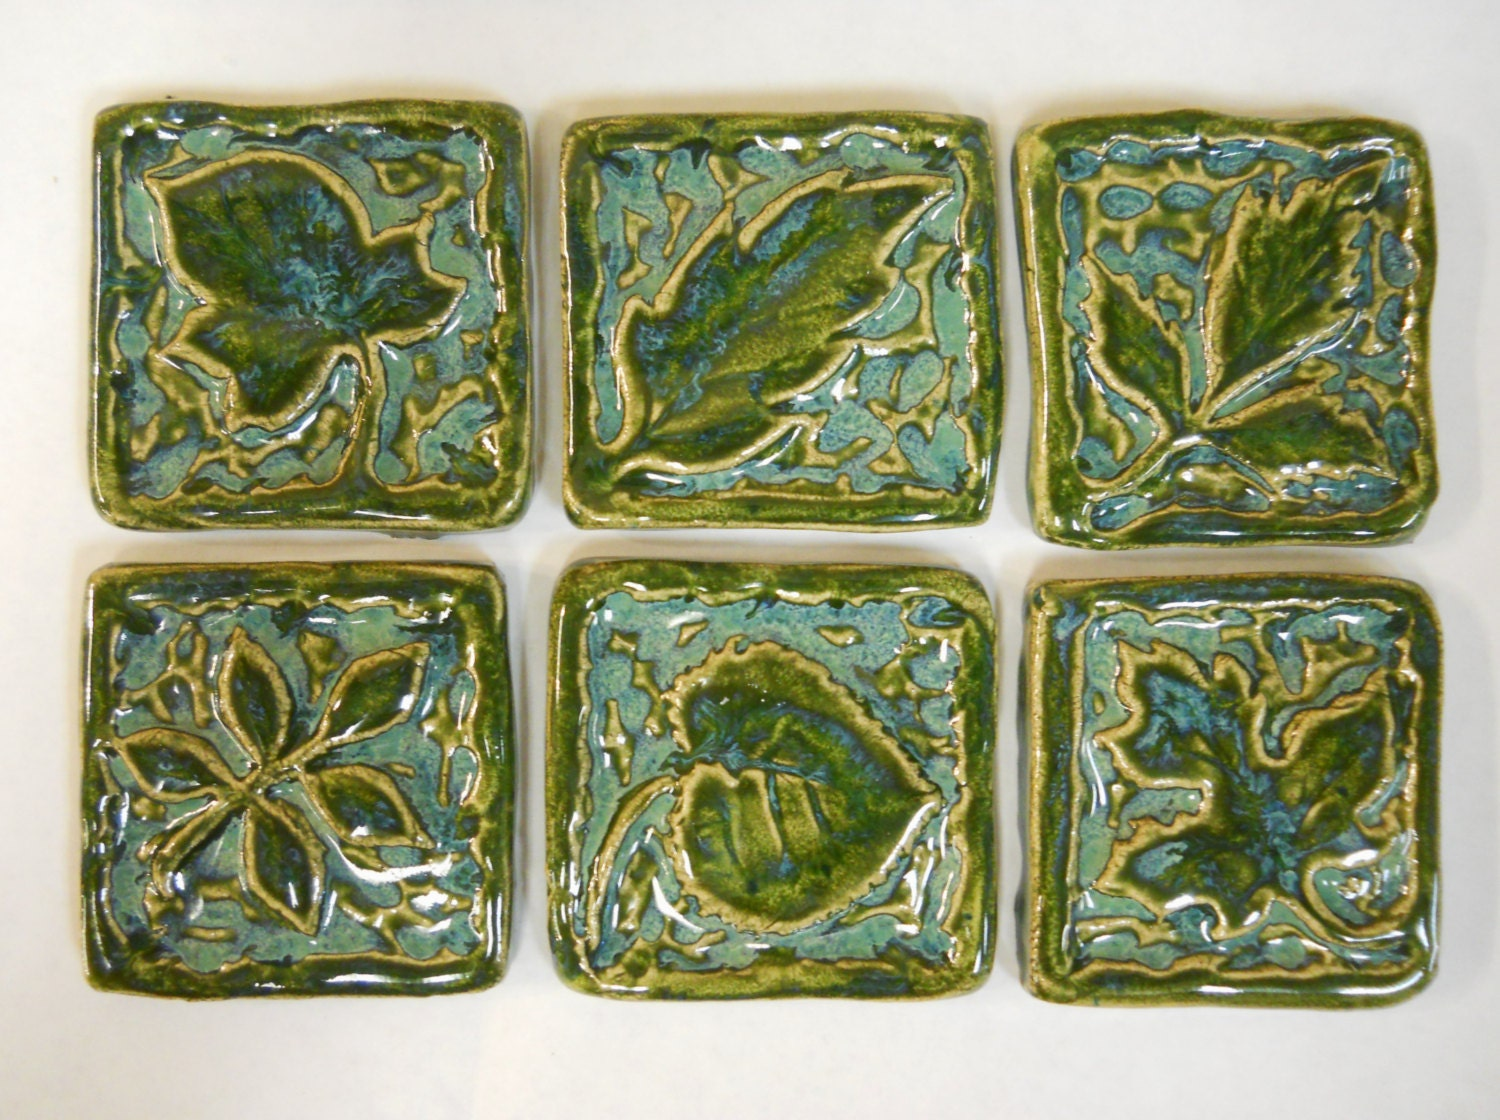 Handmade Ceramic Tiles Decorative Leaf Patterns Deep Sea